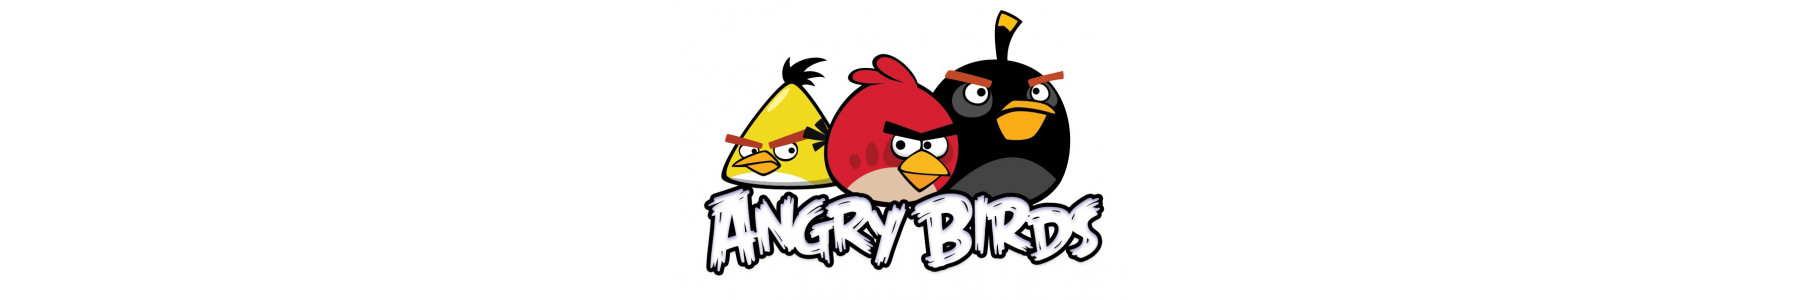 Colectia party Angry Birds